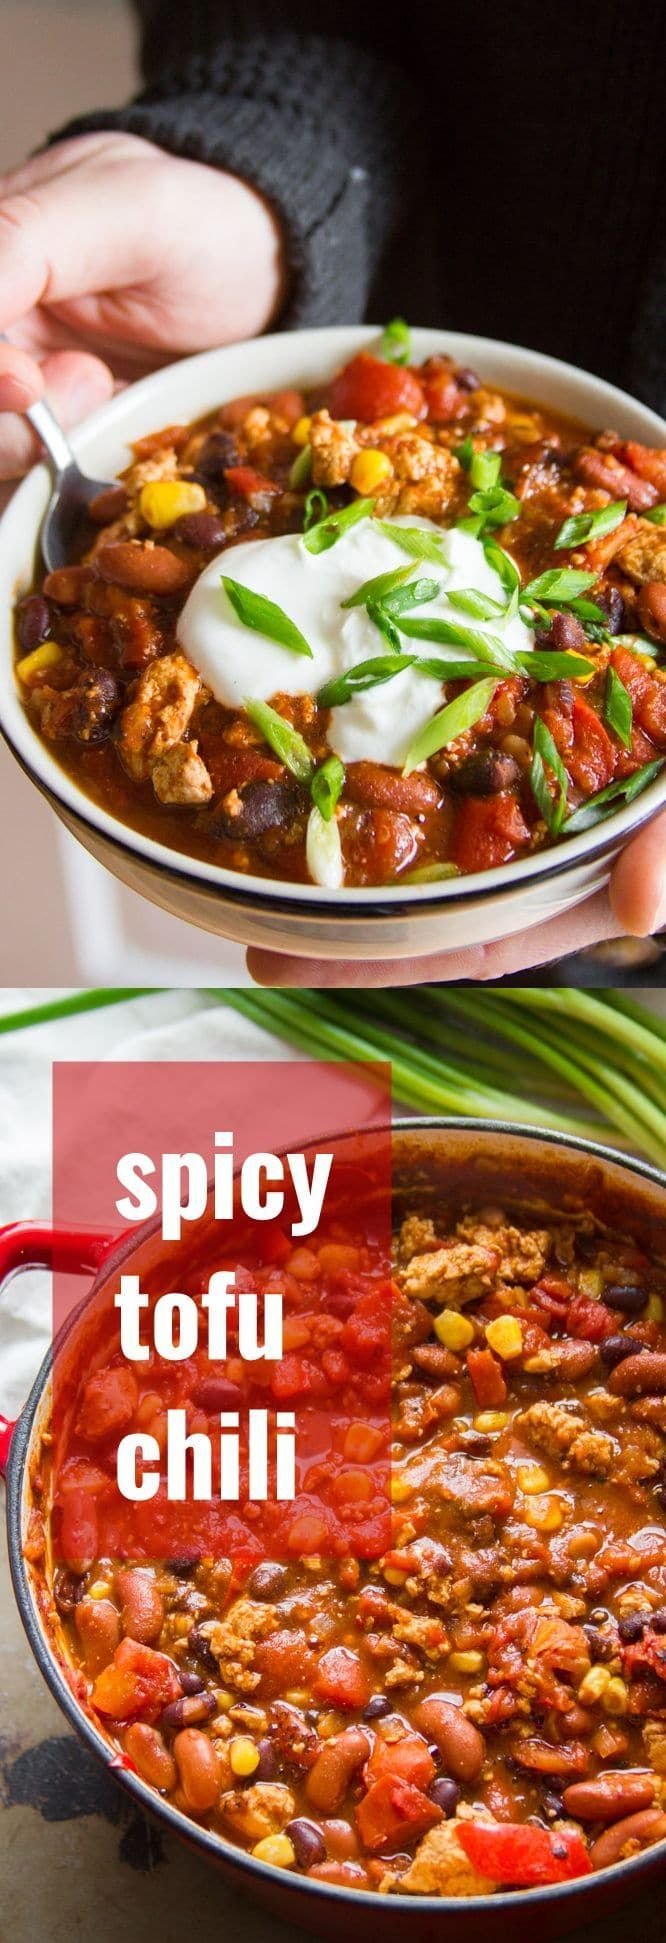 Tofu chili is the best vegan chili you will ever eat! Hearty, crumbly, and packed with protein, tofu is the game changing addition to meatless chili that you've been missing.